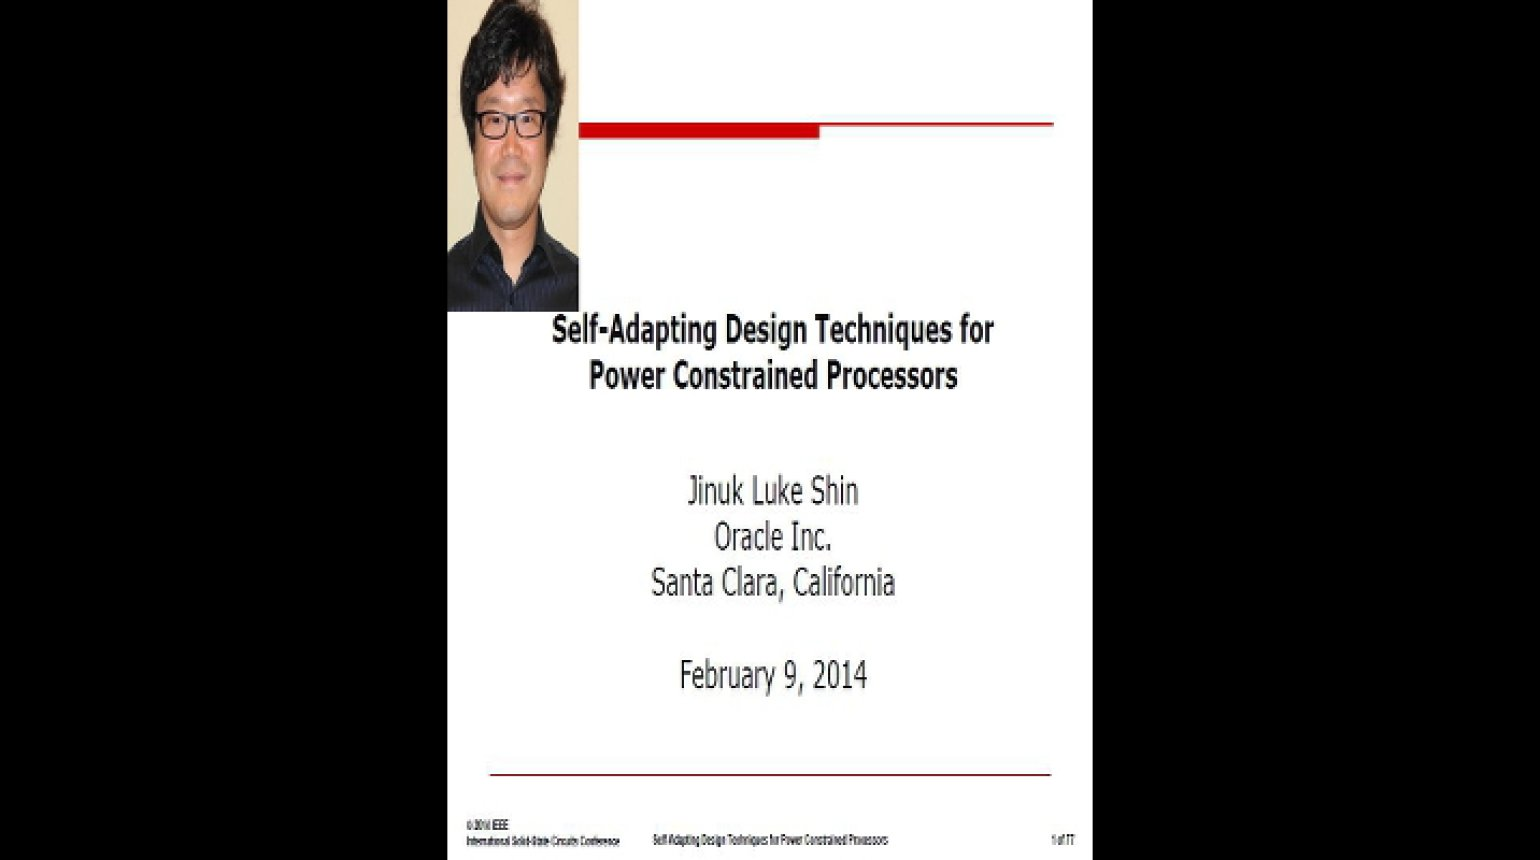 Self-Adapting Design Techniques for Power Constrained Processors Video